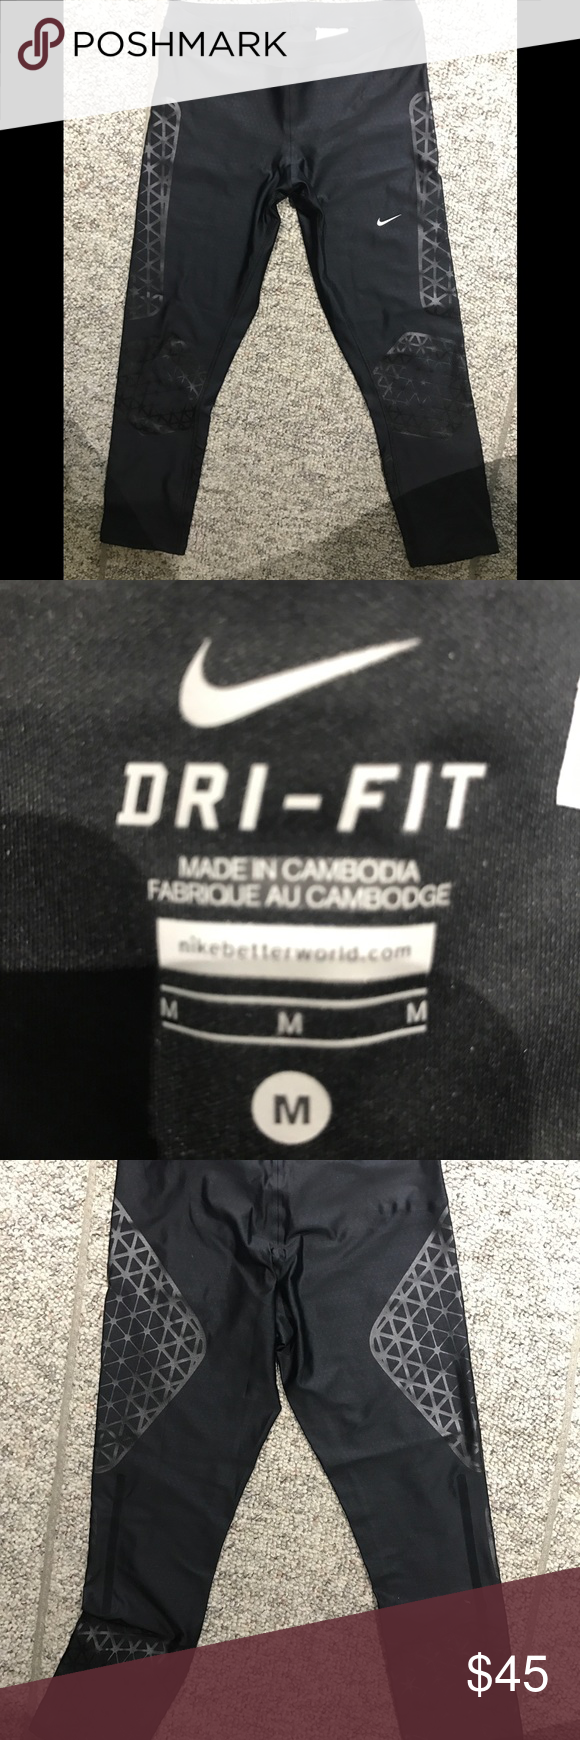 452129ad5c6c6 Perfect Condition Nike Dri-Fit Running Tights Nike Women s Printed Running  Tights deliver the ideal combination of stretch and support to help you move  ...